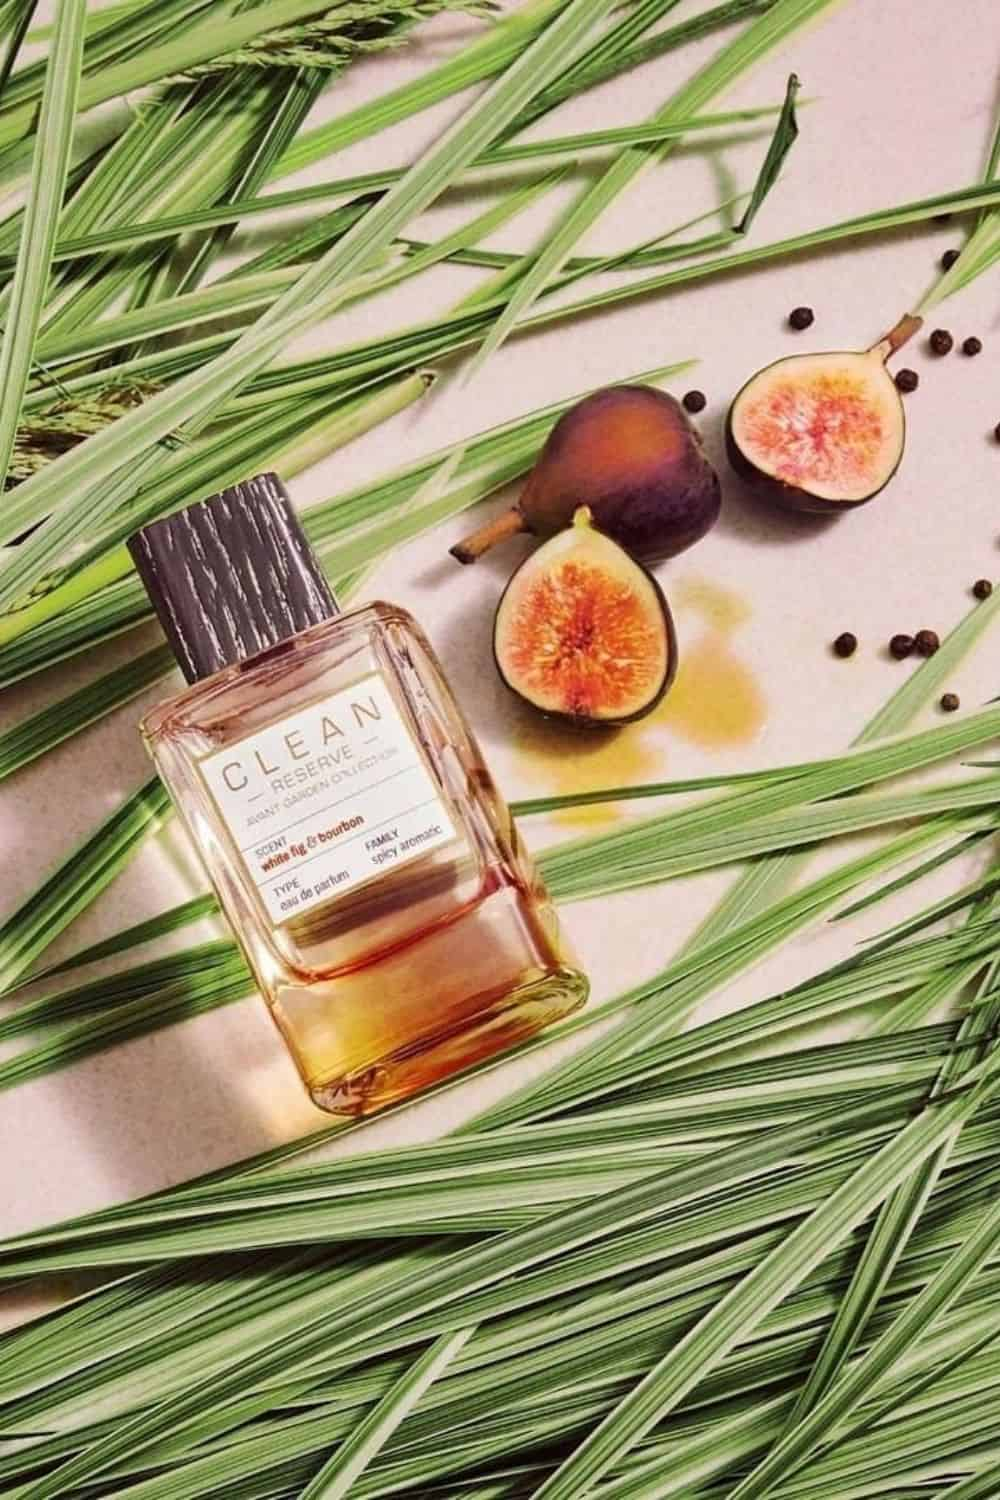 In today's world of eco conscious beauty, there are so many cruelty free perfume brands (that are also vegan) popping up and promoting a brave new world of sustainable beauty scents. Image by Clean Beauty Collective #crueltyfreeperfume #sustainablebeauty